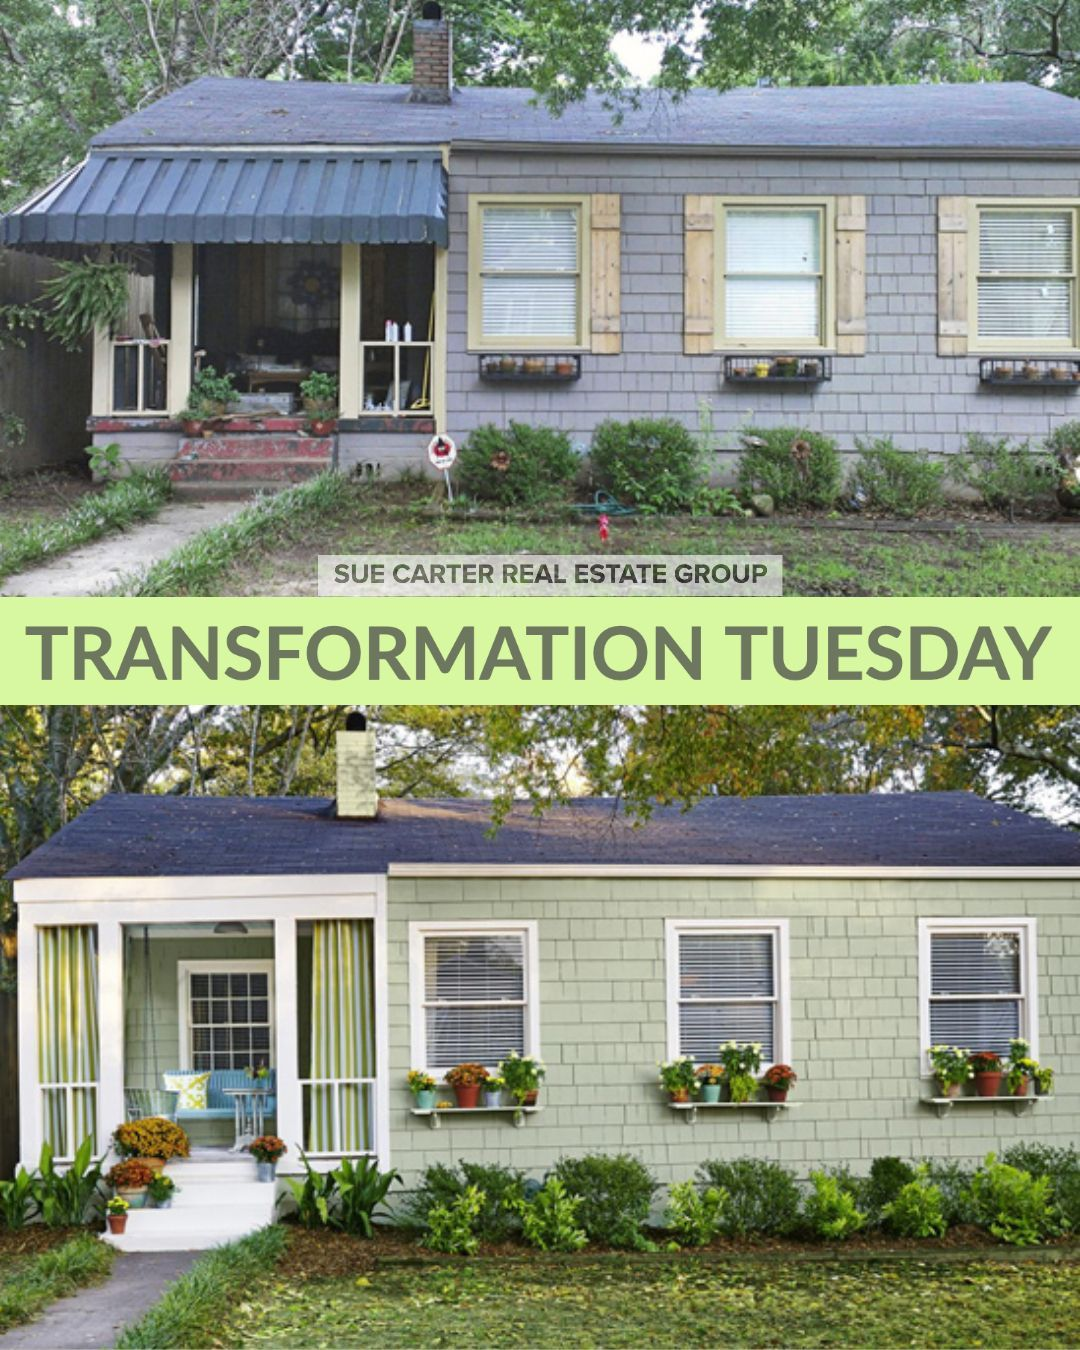 🏚➡️🏡 Small Curb Appeal Updates Make a Big Impact! #TransformationTuesday #CurbAppeal #SueCarterRealEstateGroup